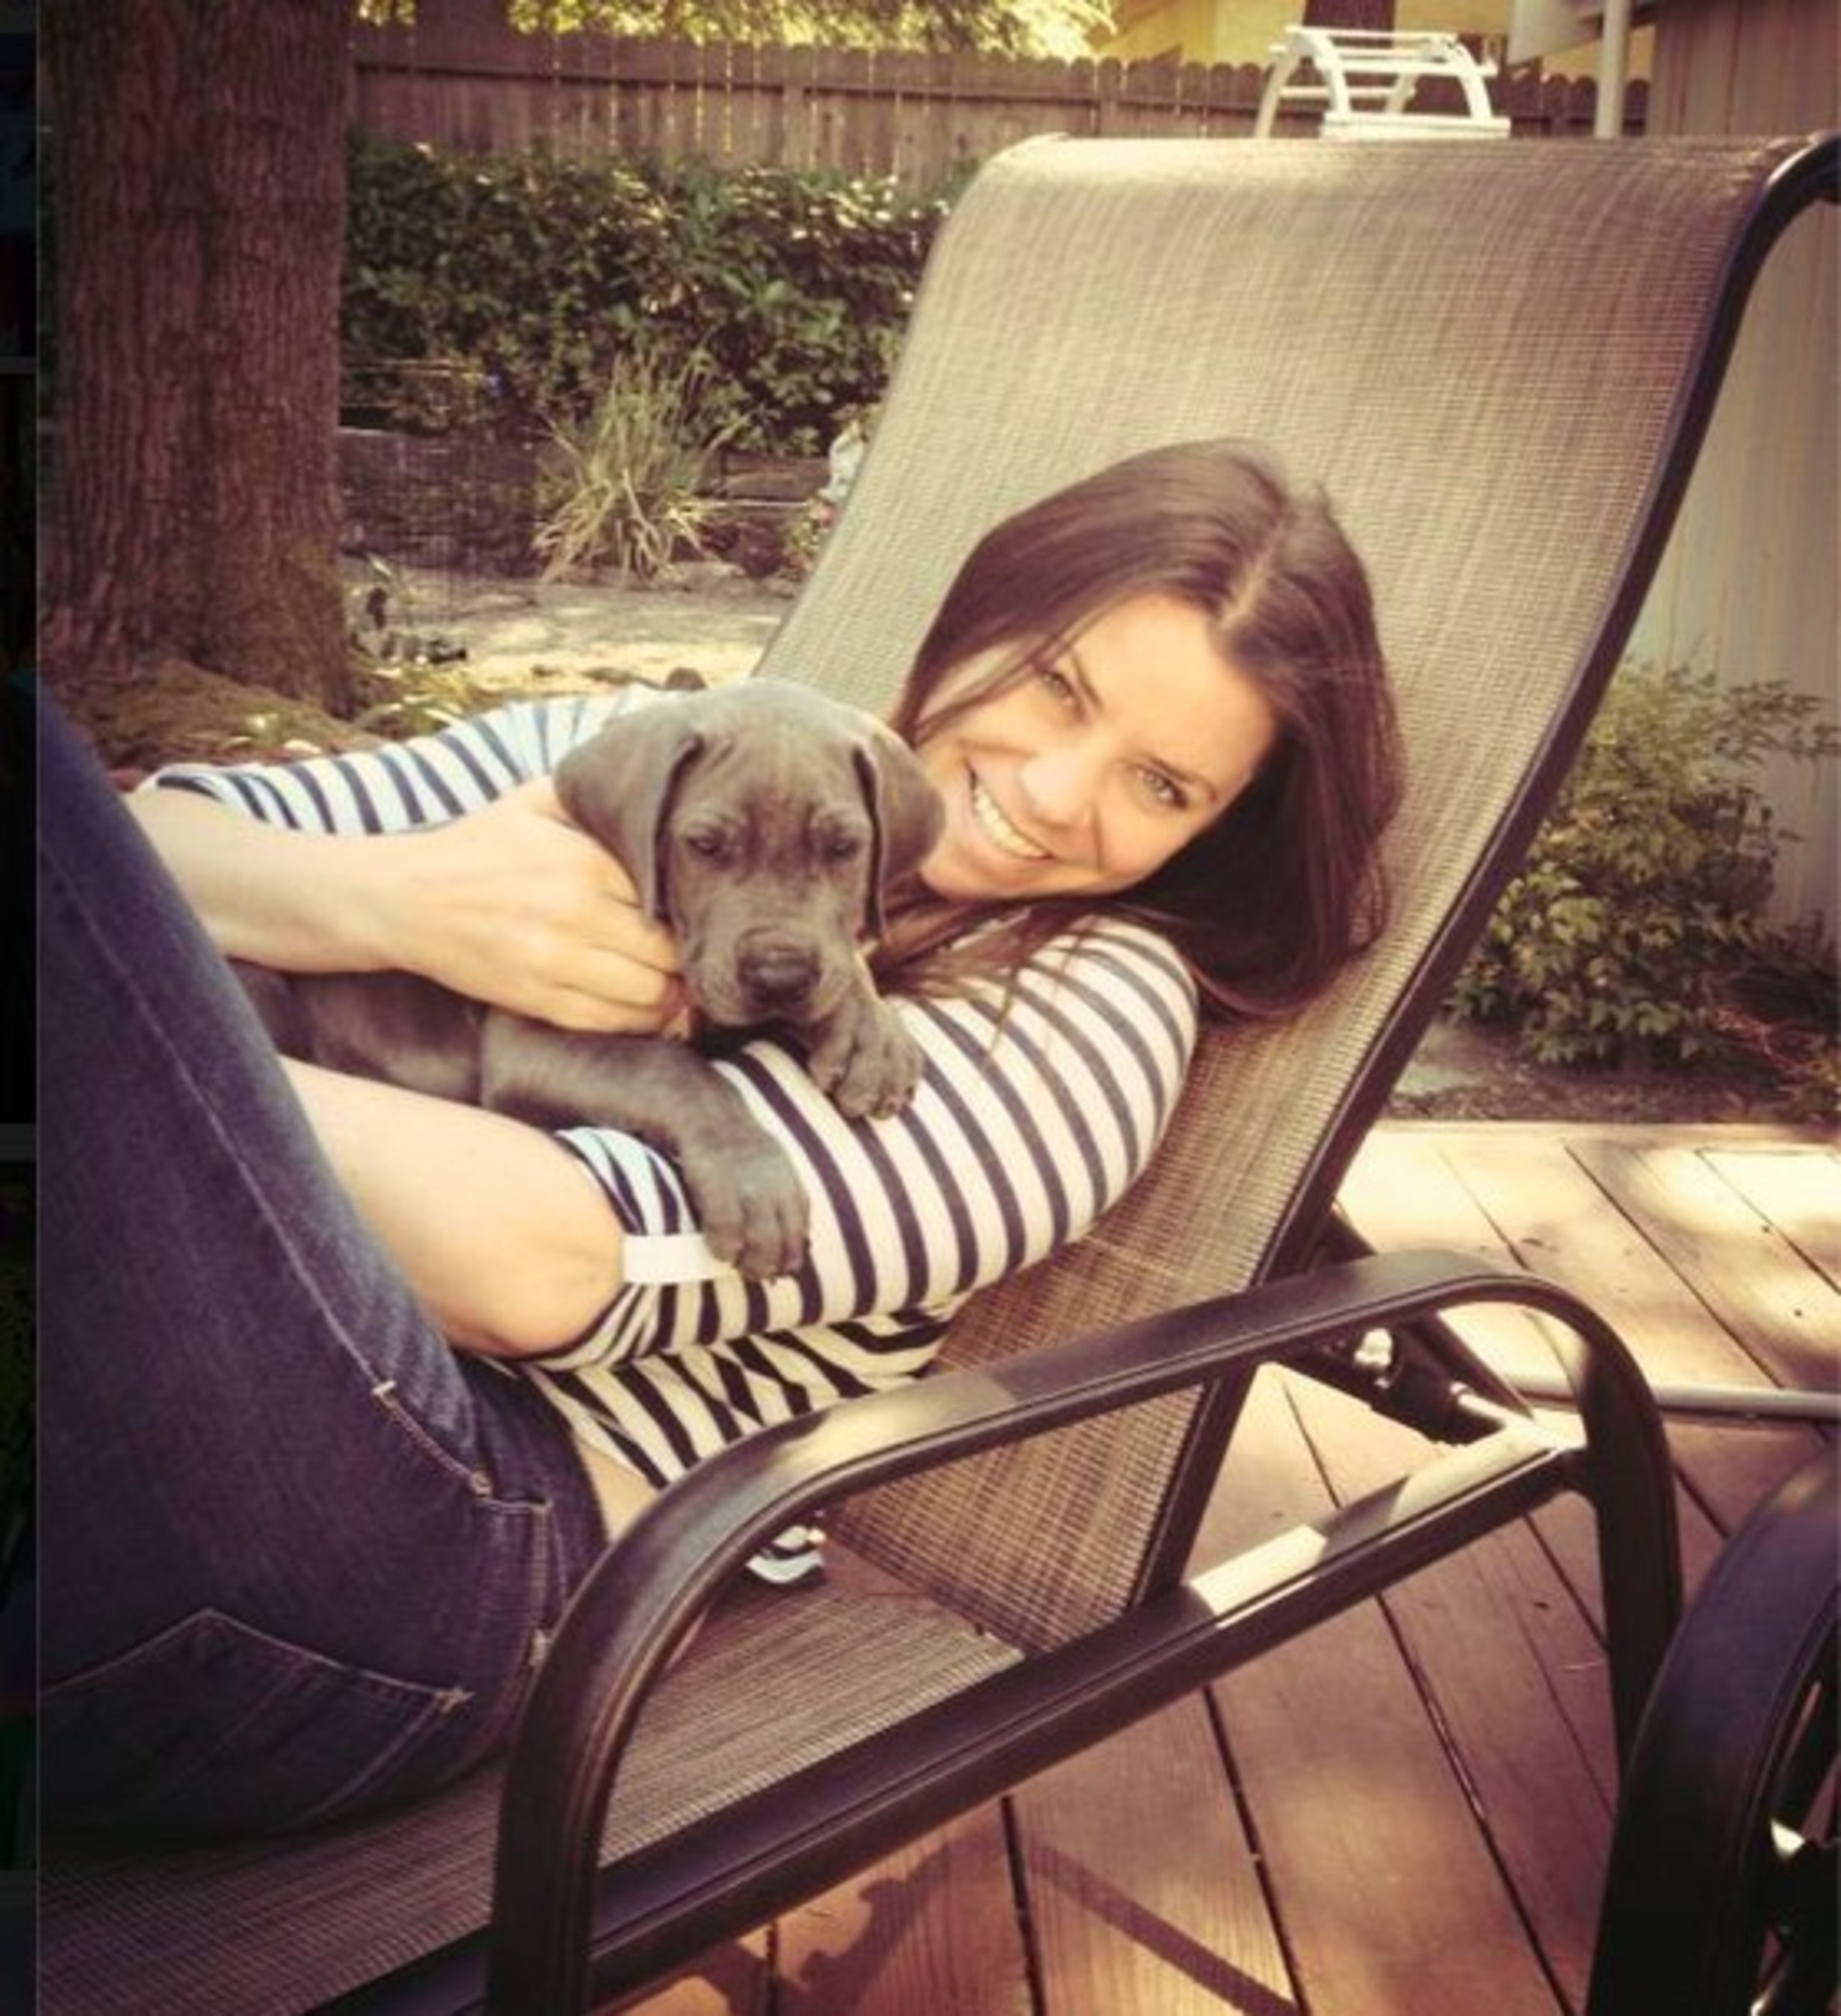 Brittany Maynard, Terminal cancer patient/Death with Dignity advocate